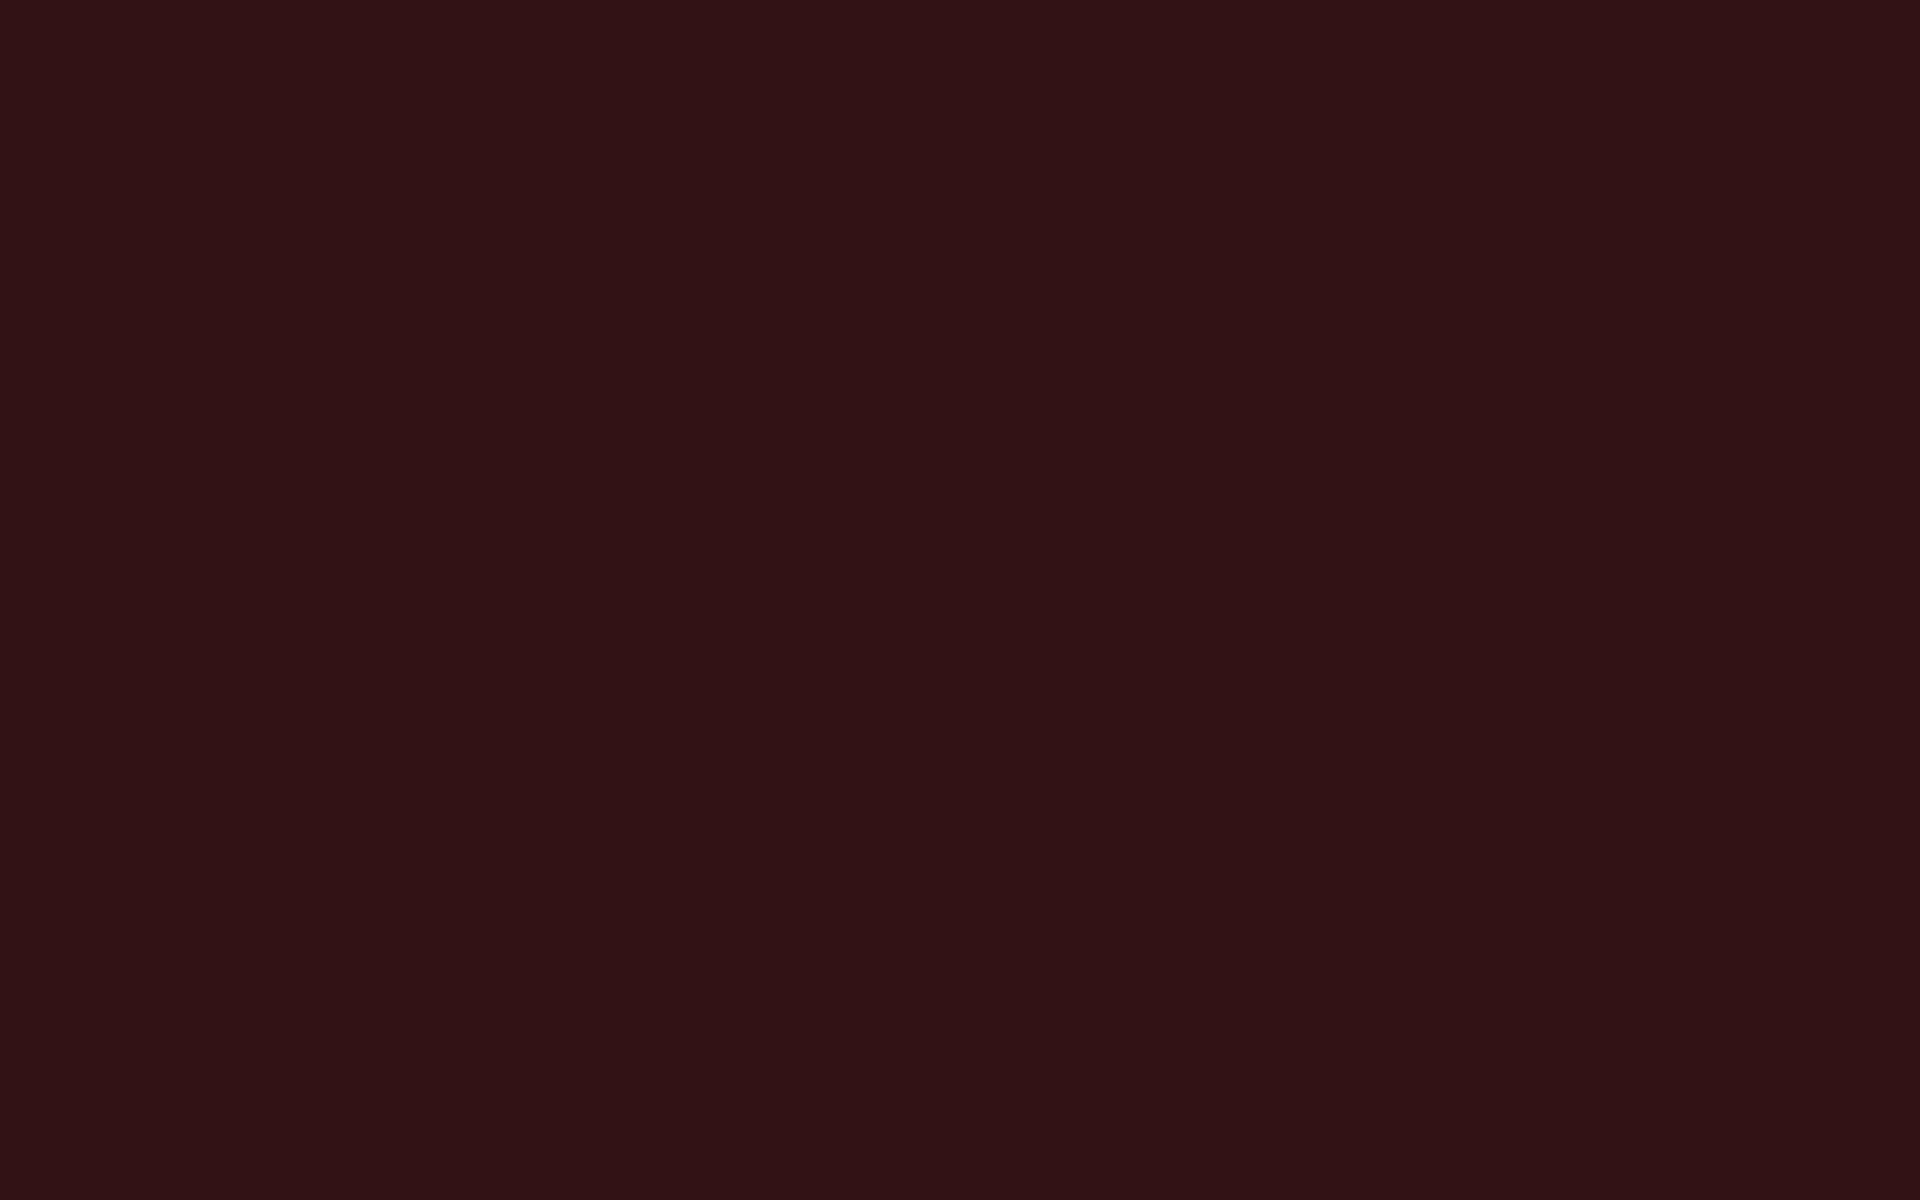 1920x1200 Seal Brown Solid Color Background